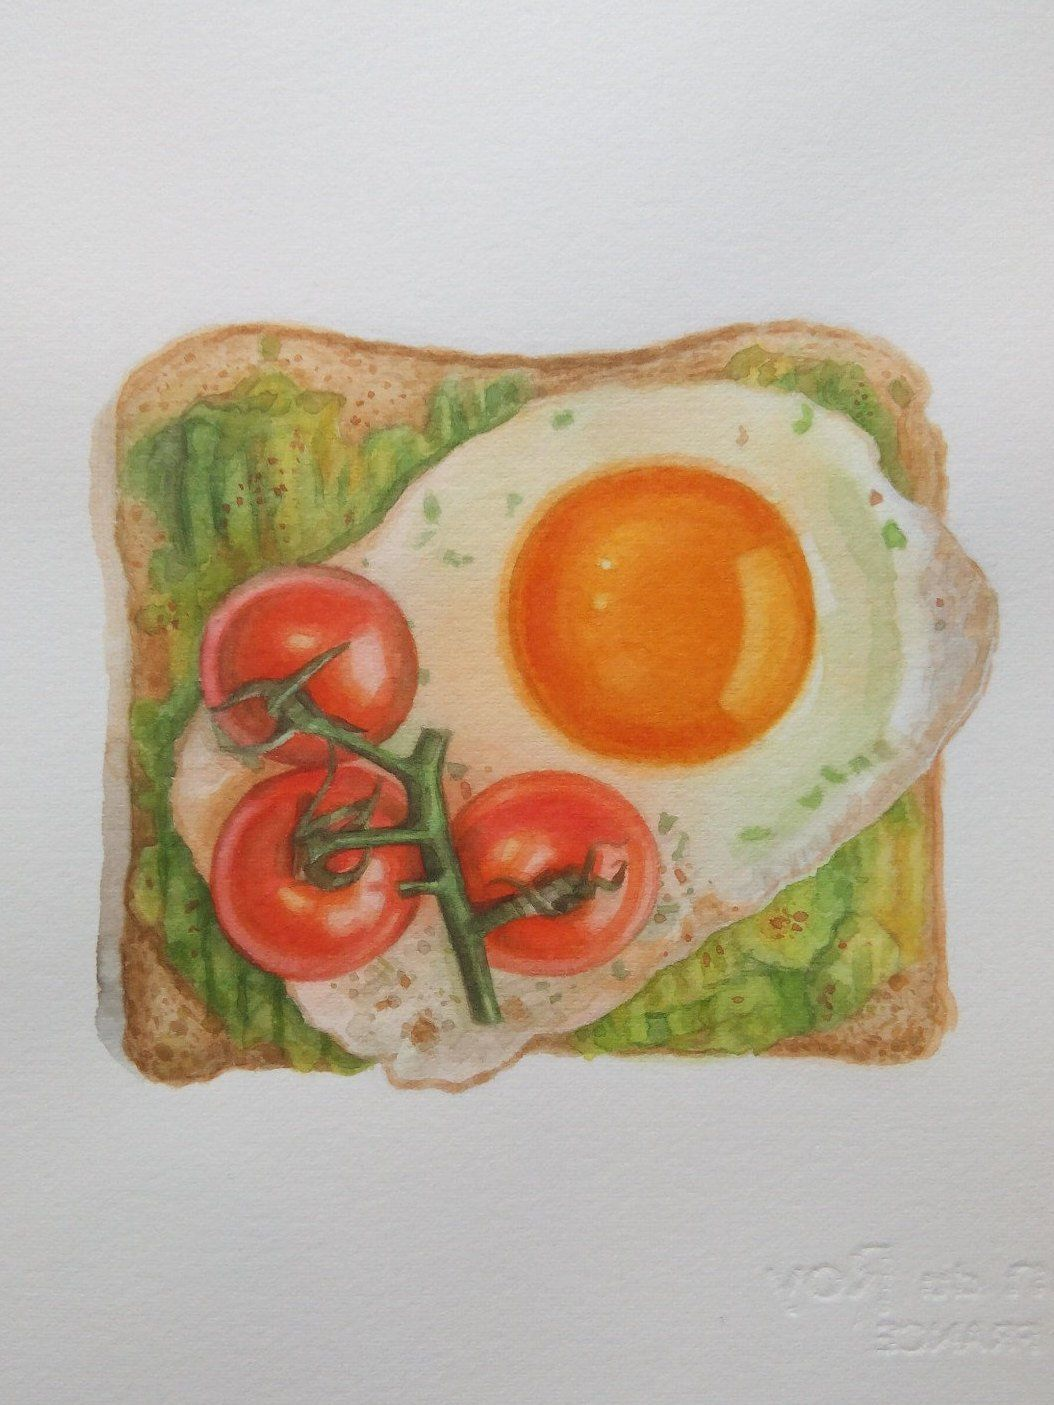 Avocado Tomatoes Fried Egg Bread Watercolor Breakfast Toast Etsy In 2020 Food Painting Fruit Artwork Fruits Drawing